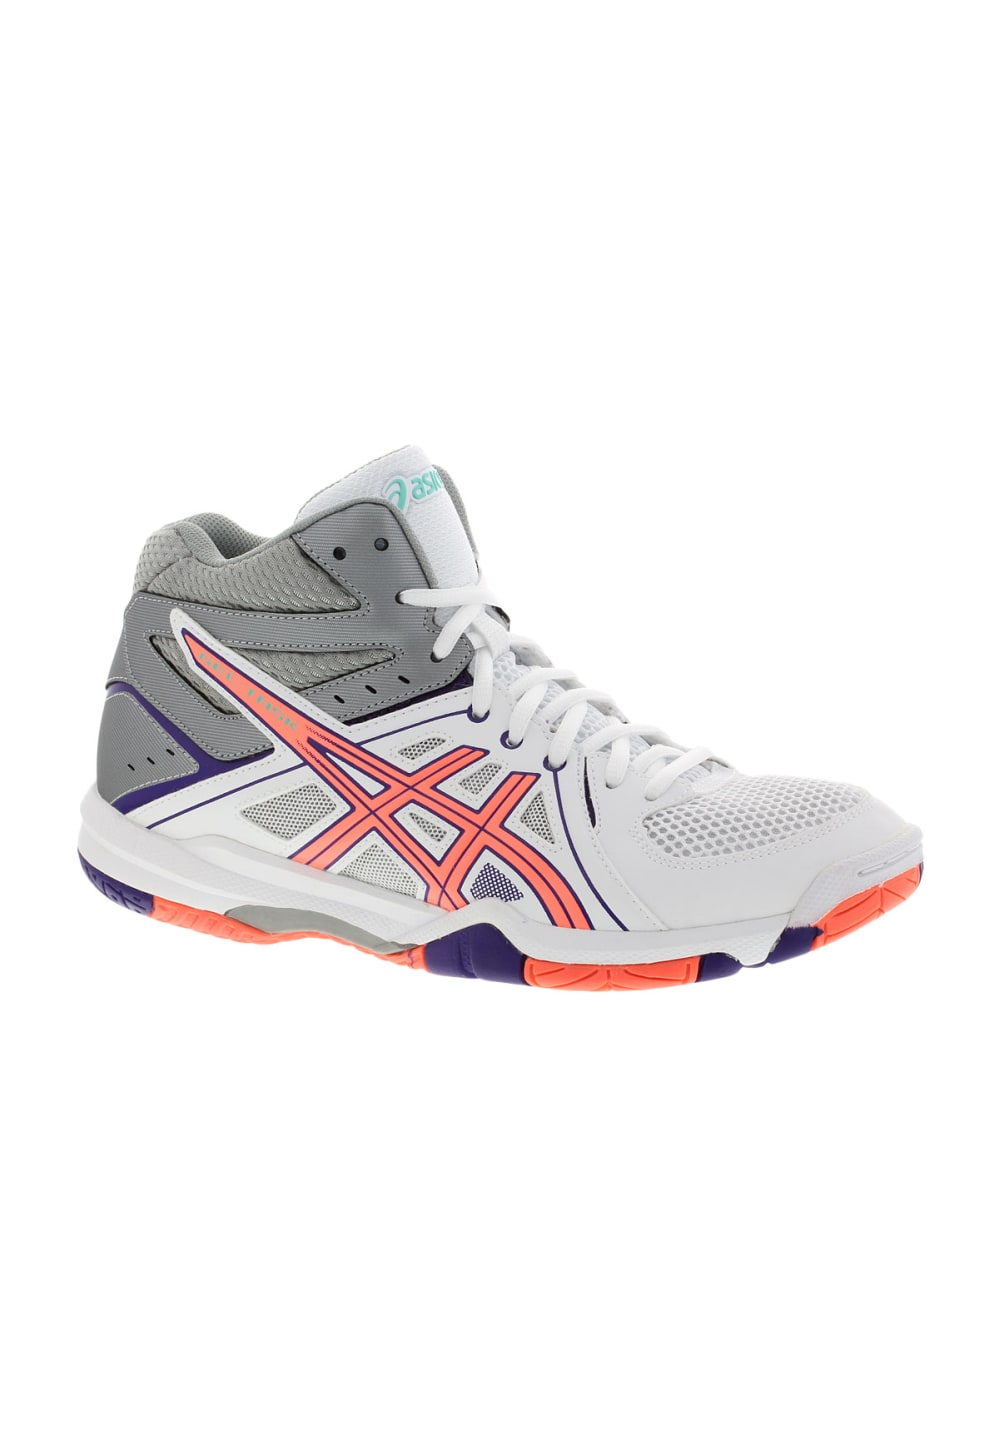 502793de177a ASICS GEL-Task MT - Volleyball shoes for Women - White